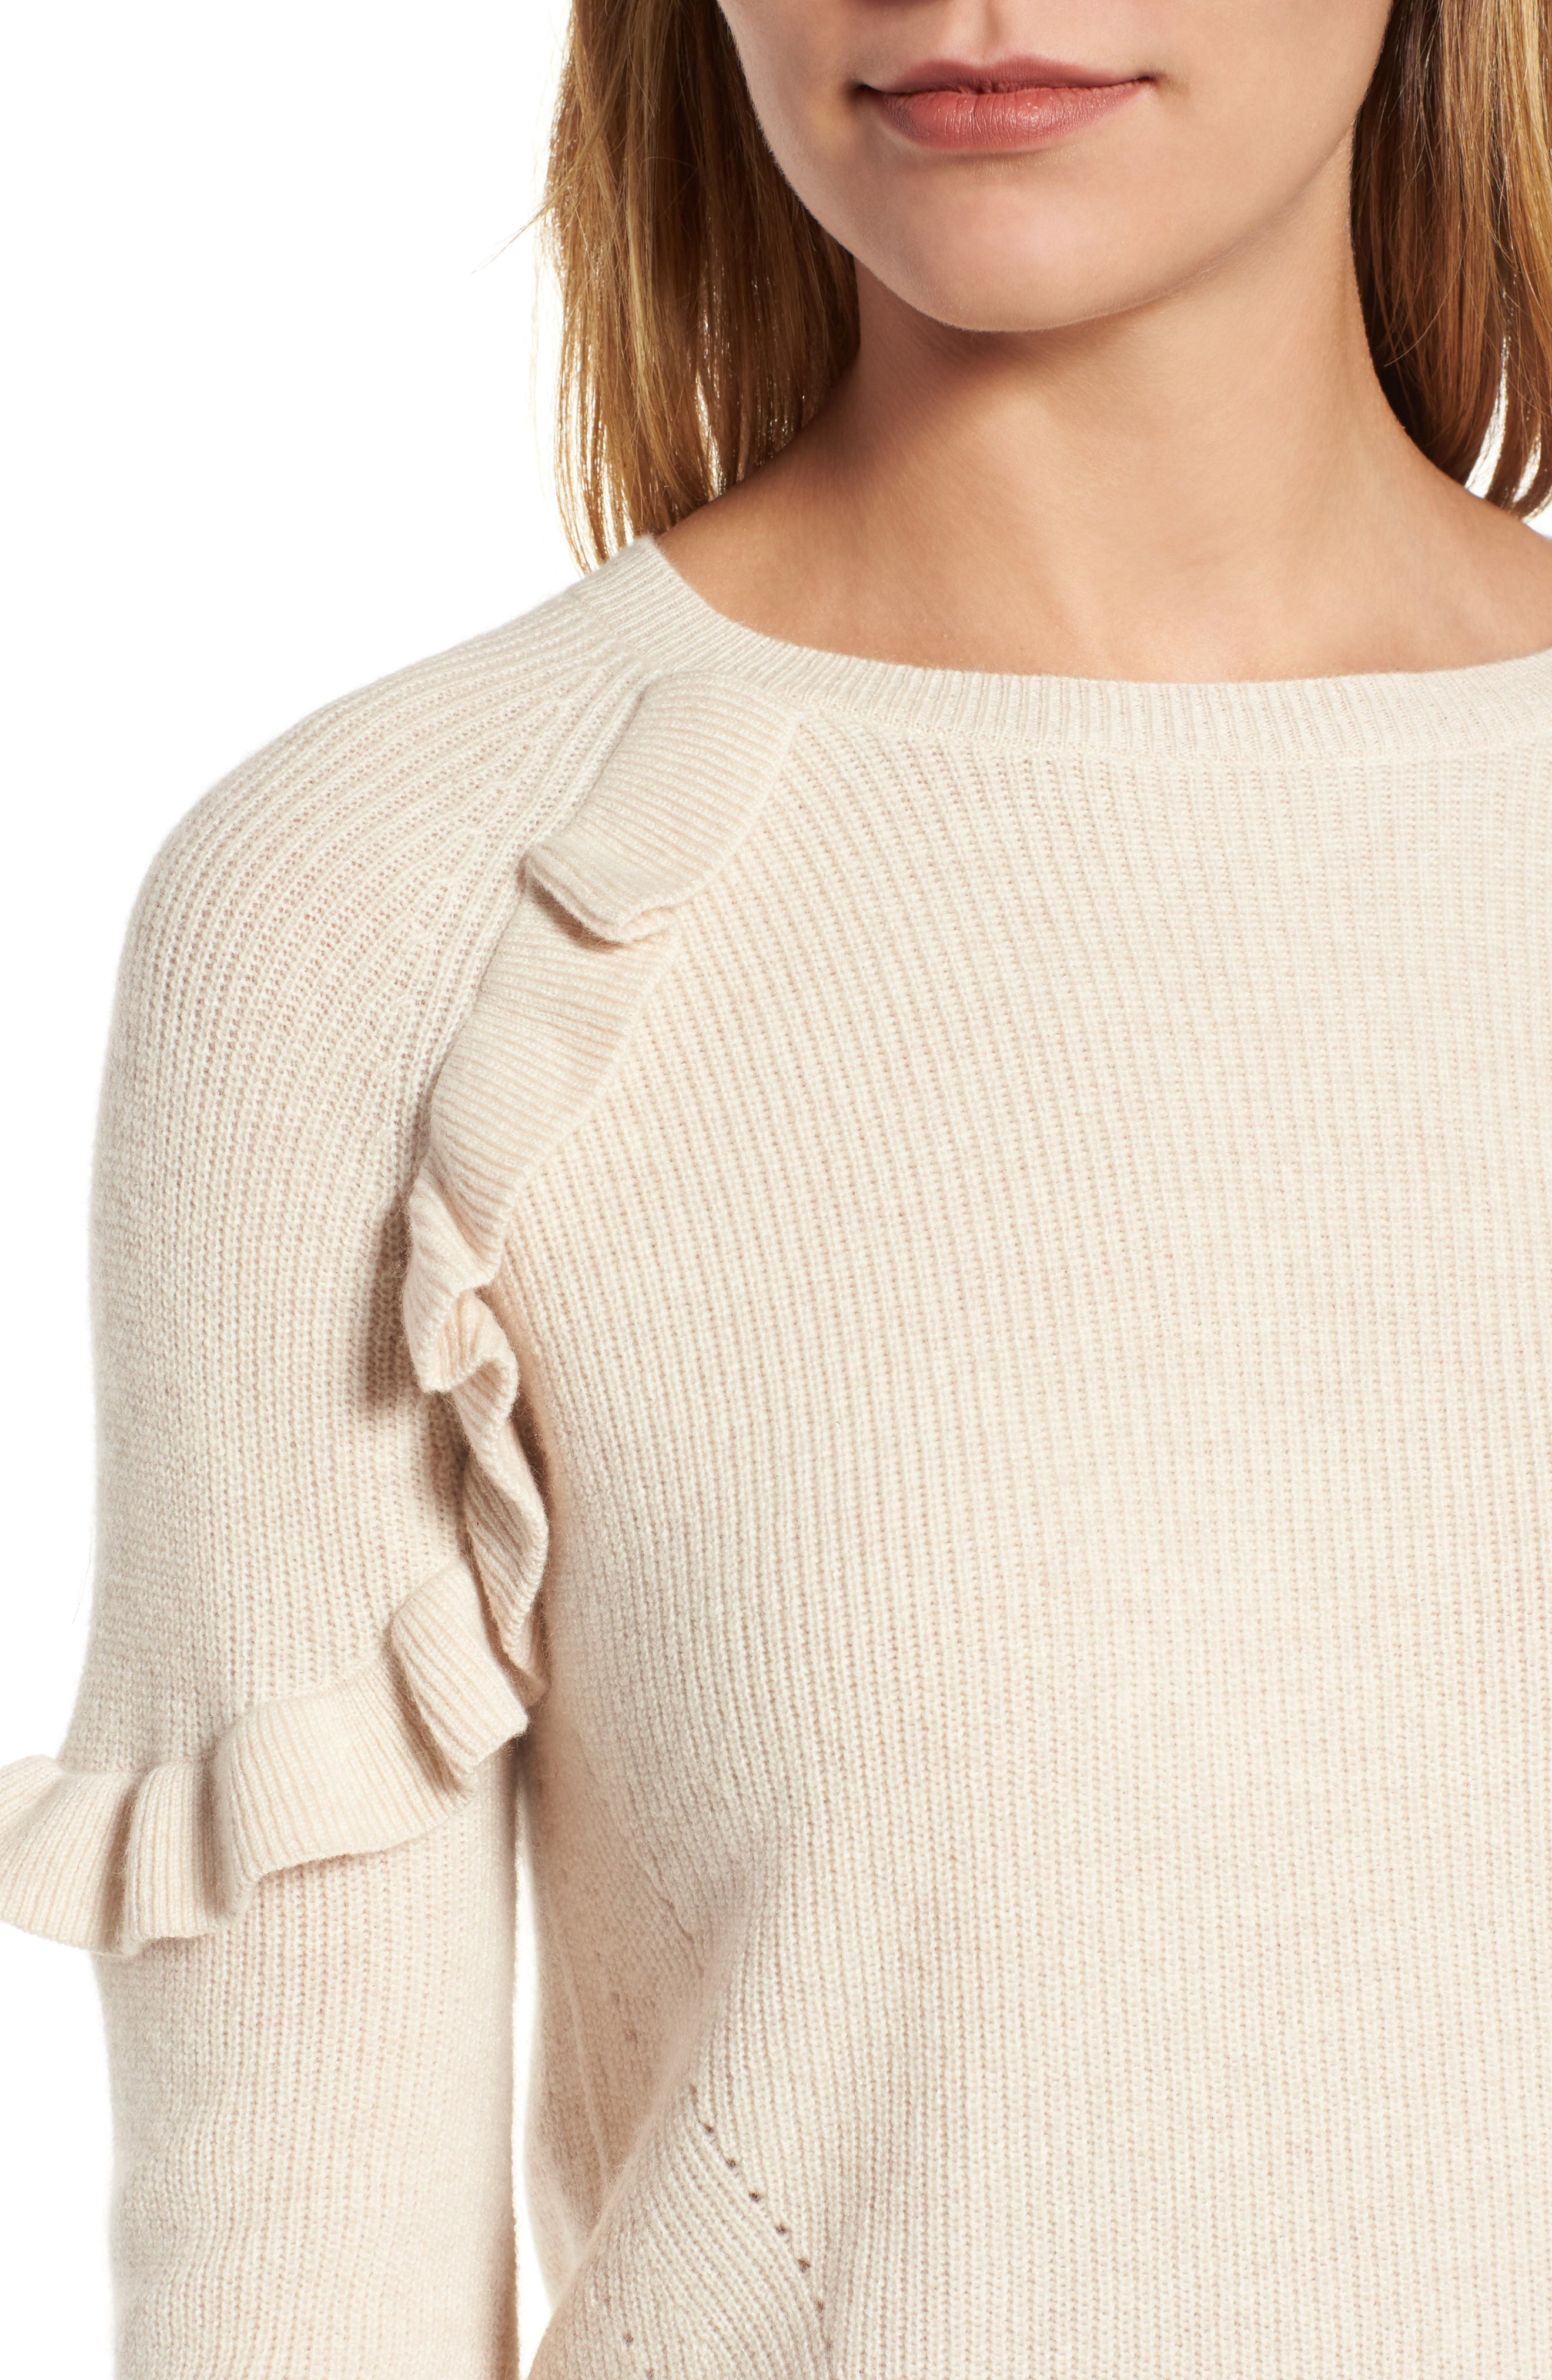 Cashmere Ruffle Shoulder Sweater,                             Alternate thumbnail 4, color,